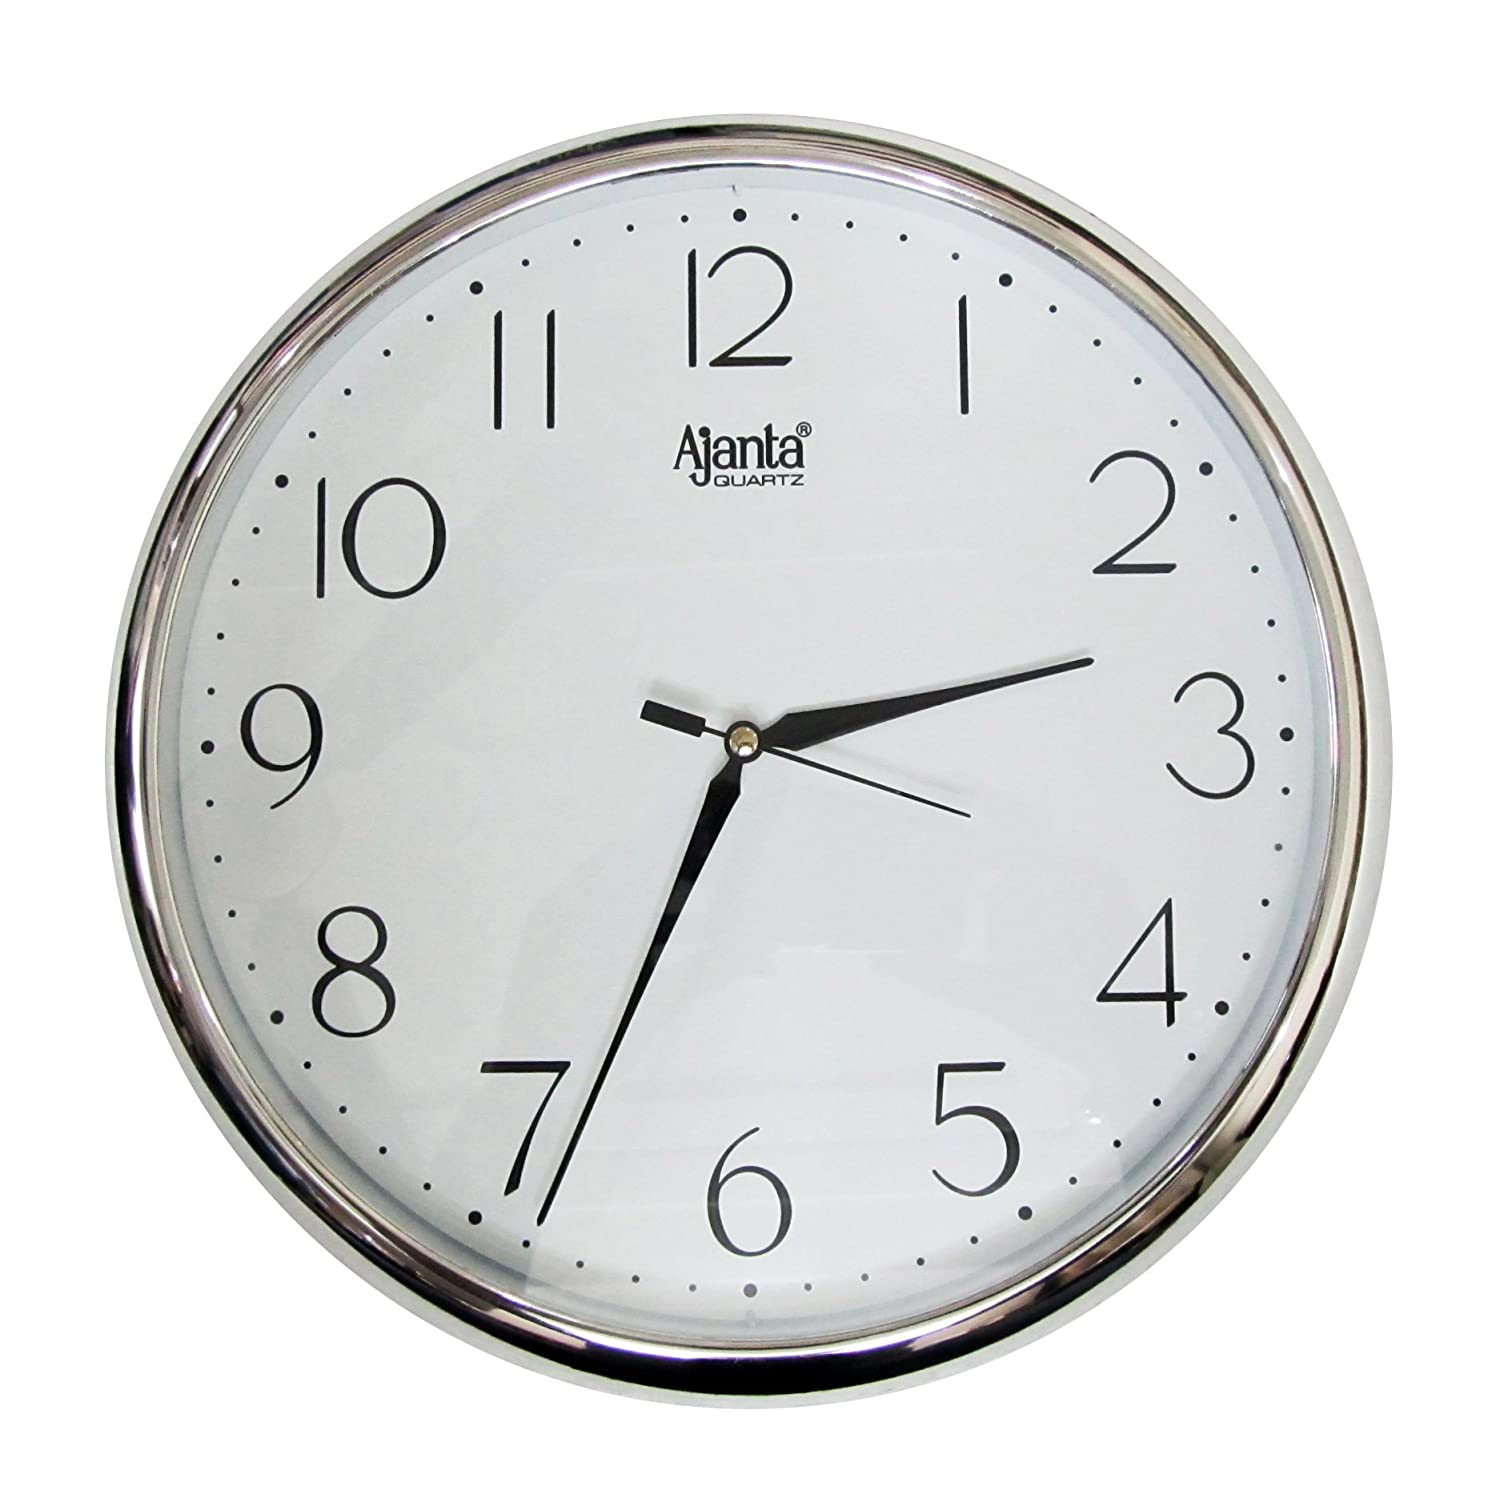 buy redclub ajanta quartz silver ring plastic wall clock silver white online at low prices in india amazonin